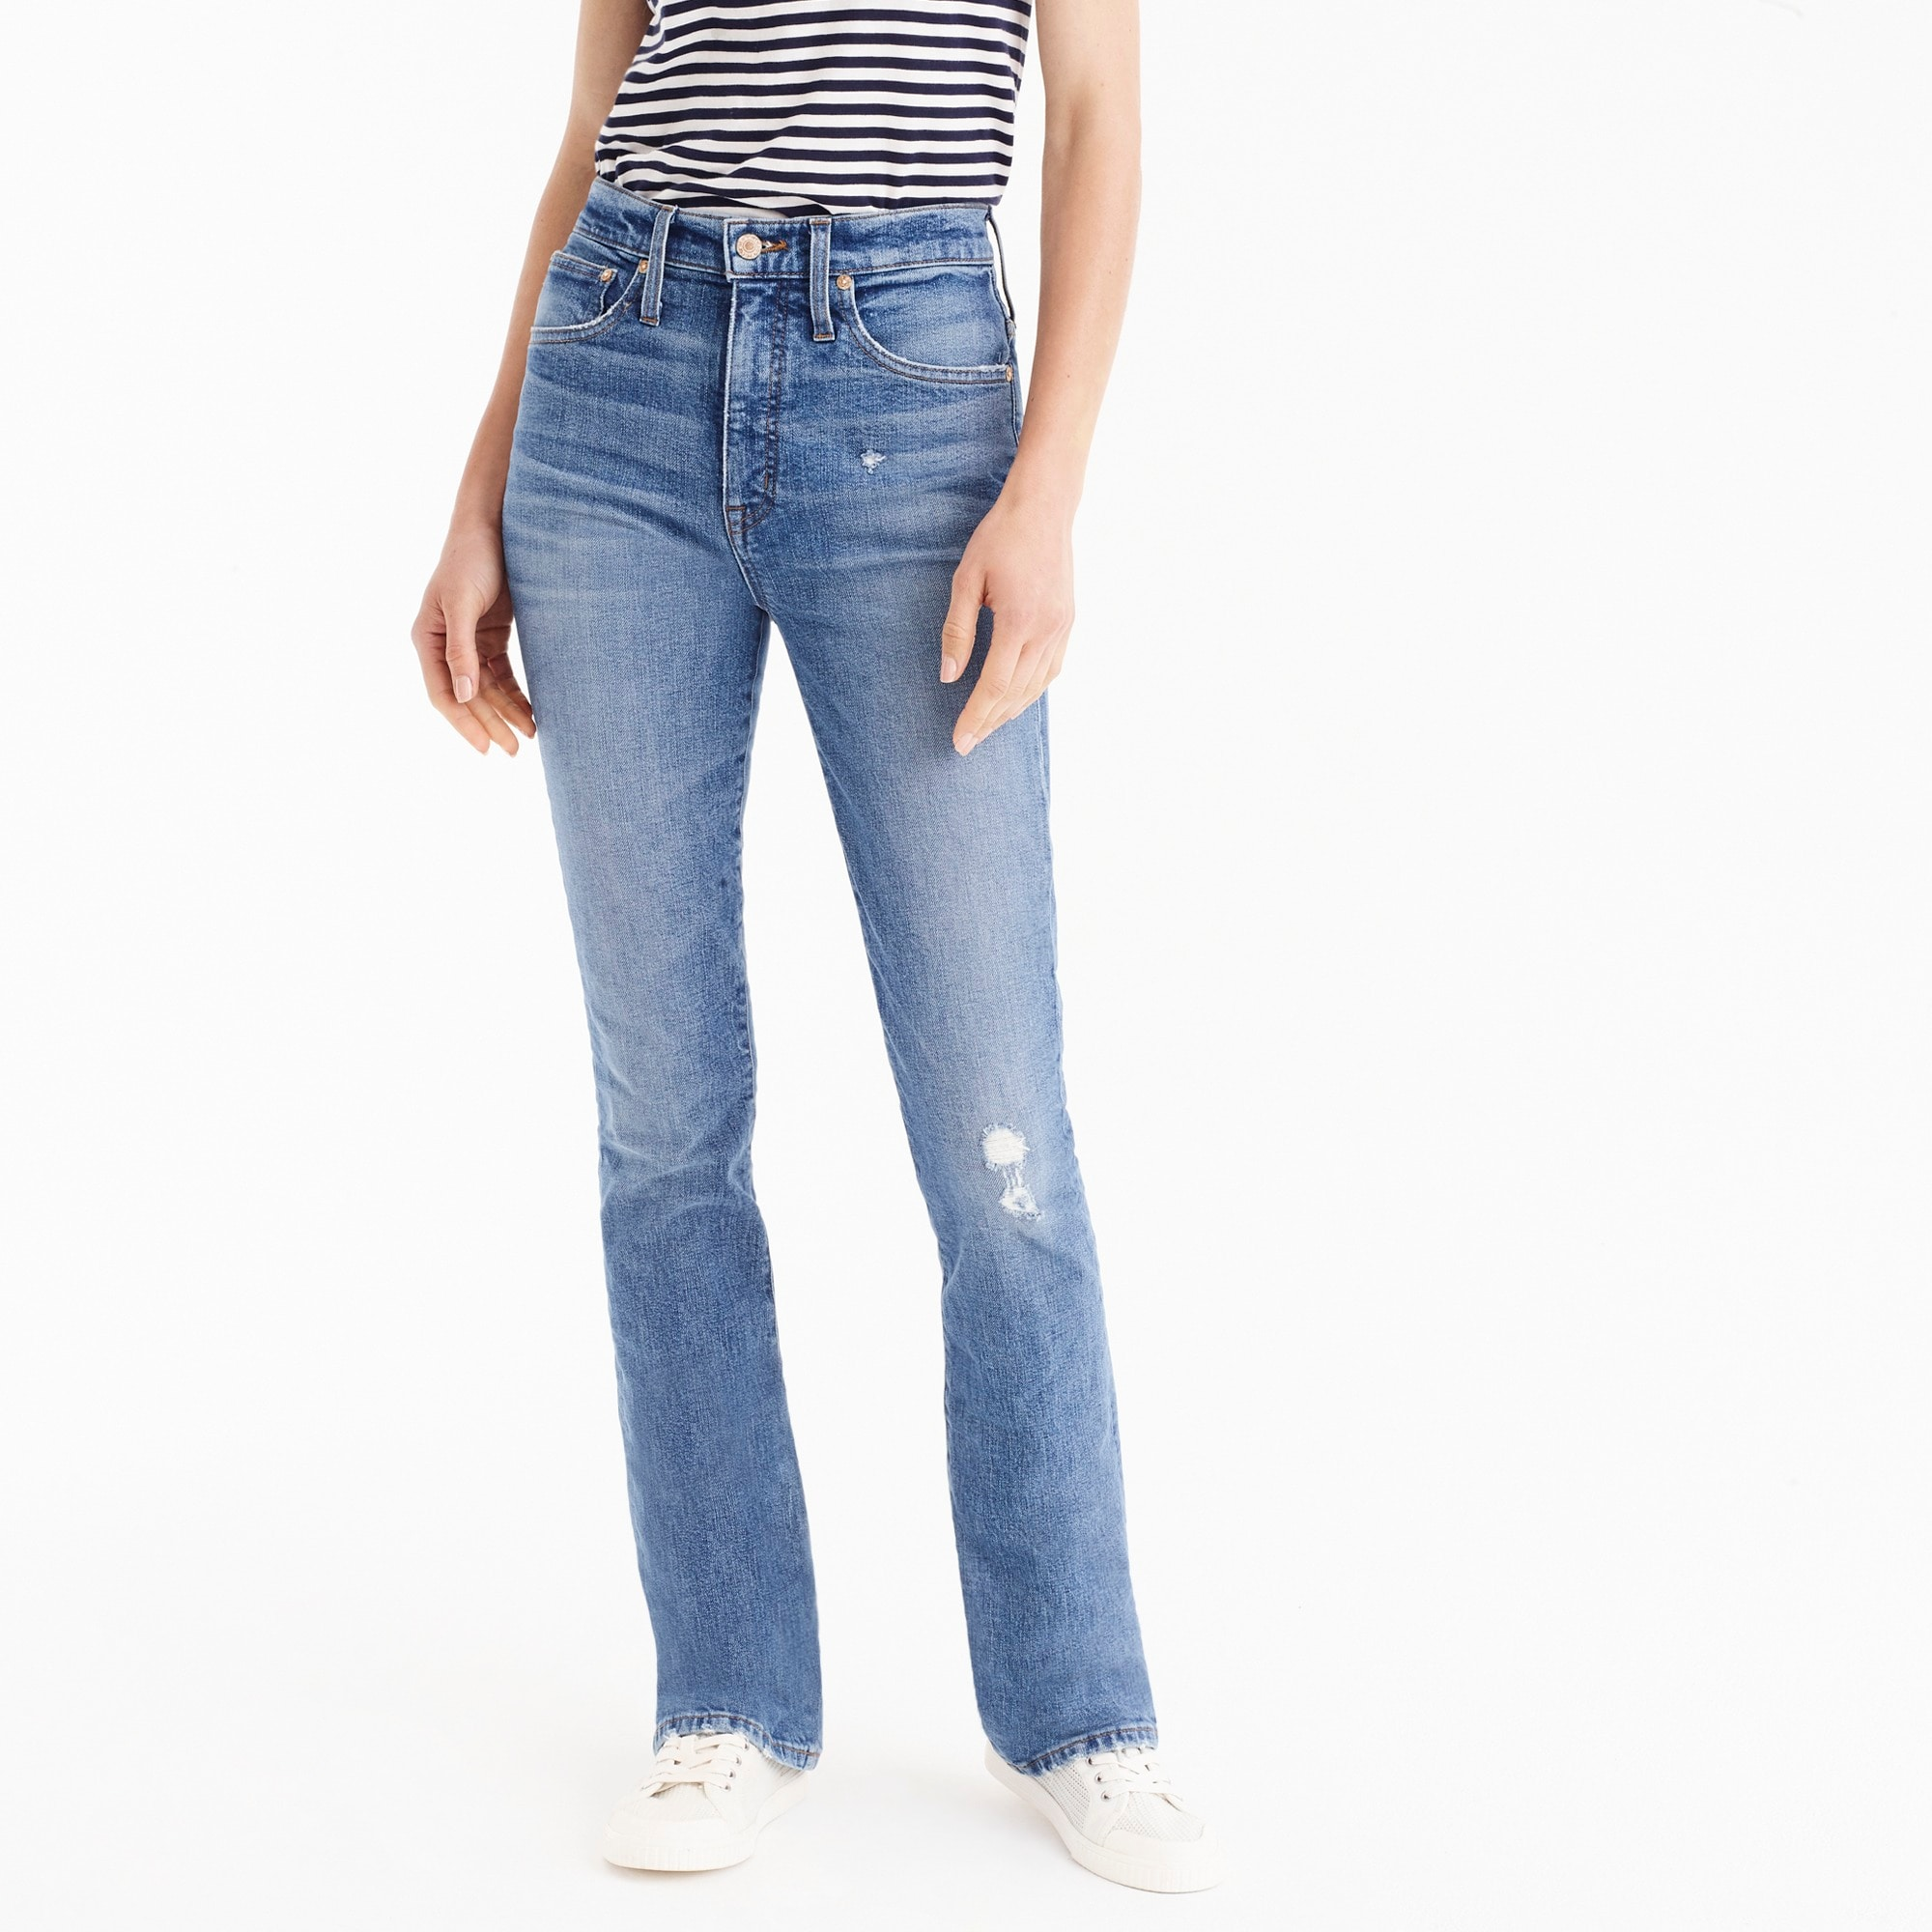 womens Point Sur skinny flare jean in vintage wash